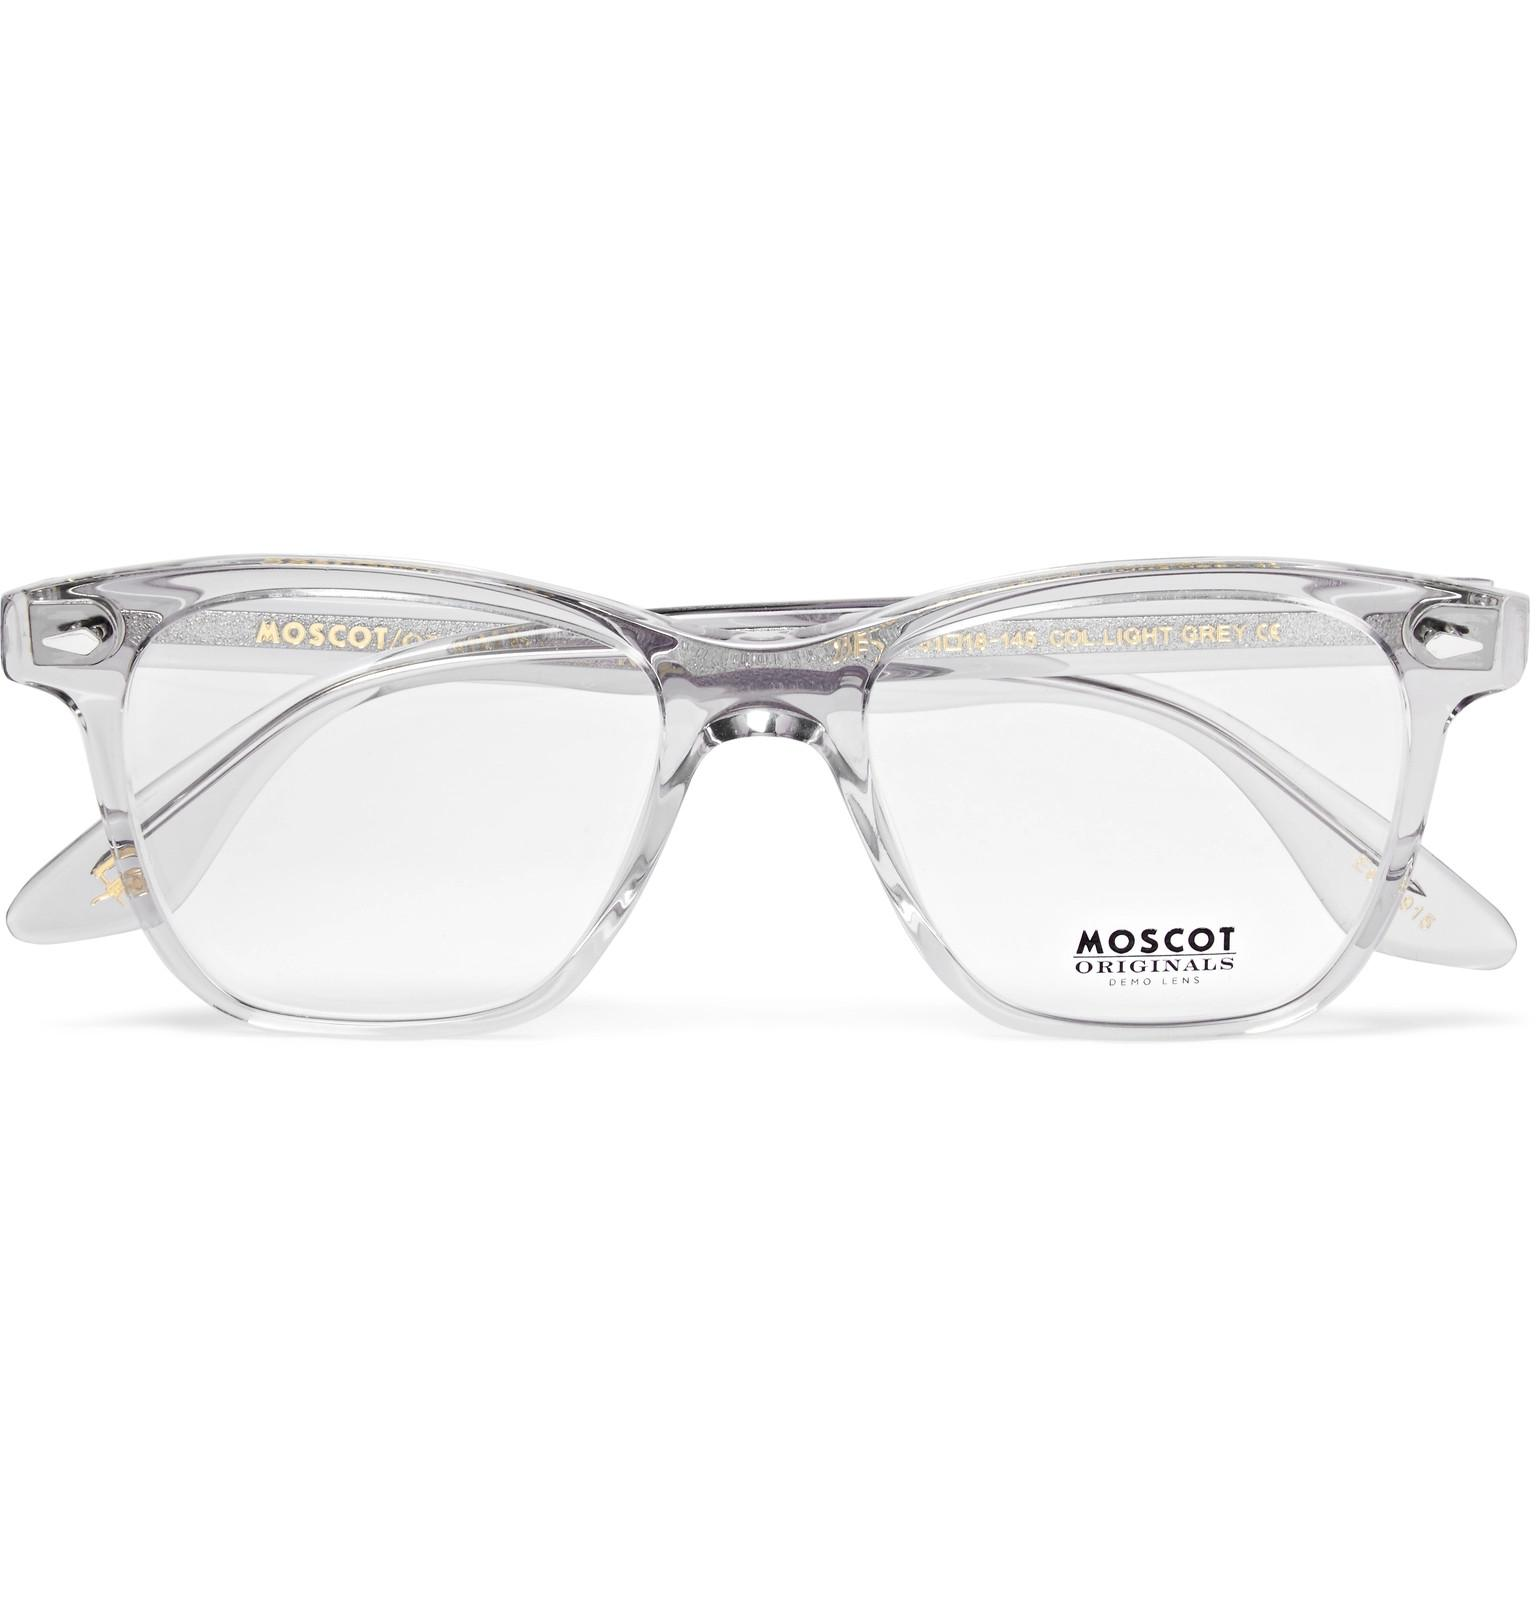 5b7ccc88a3 Moscot Zoftik Square-frame Acetate Optical Glasses in Gray for Men ...